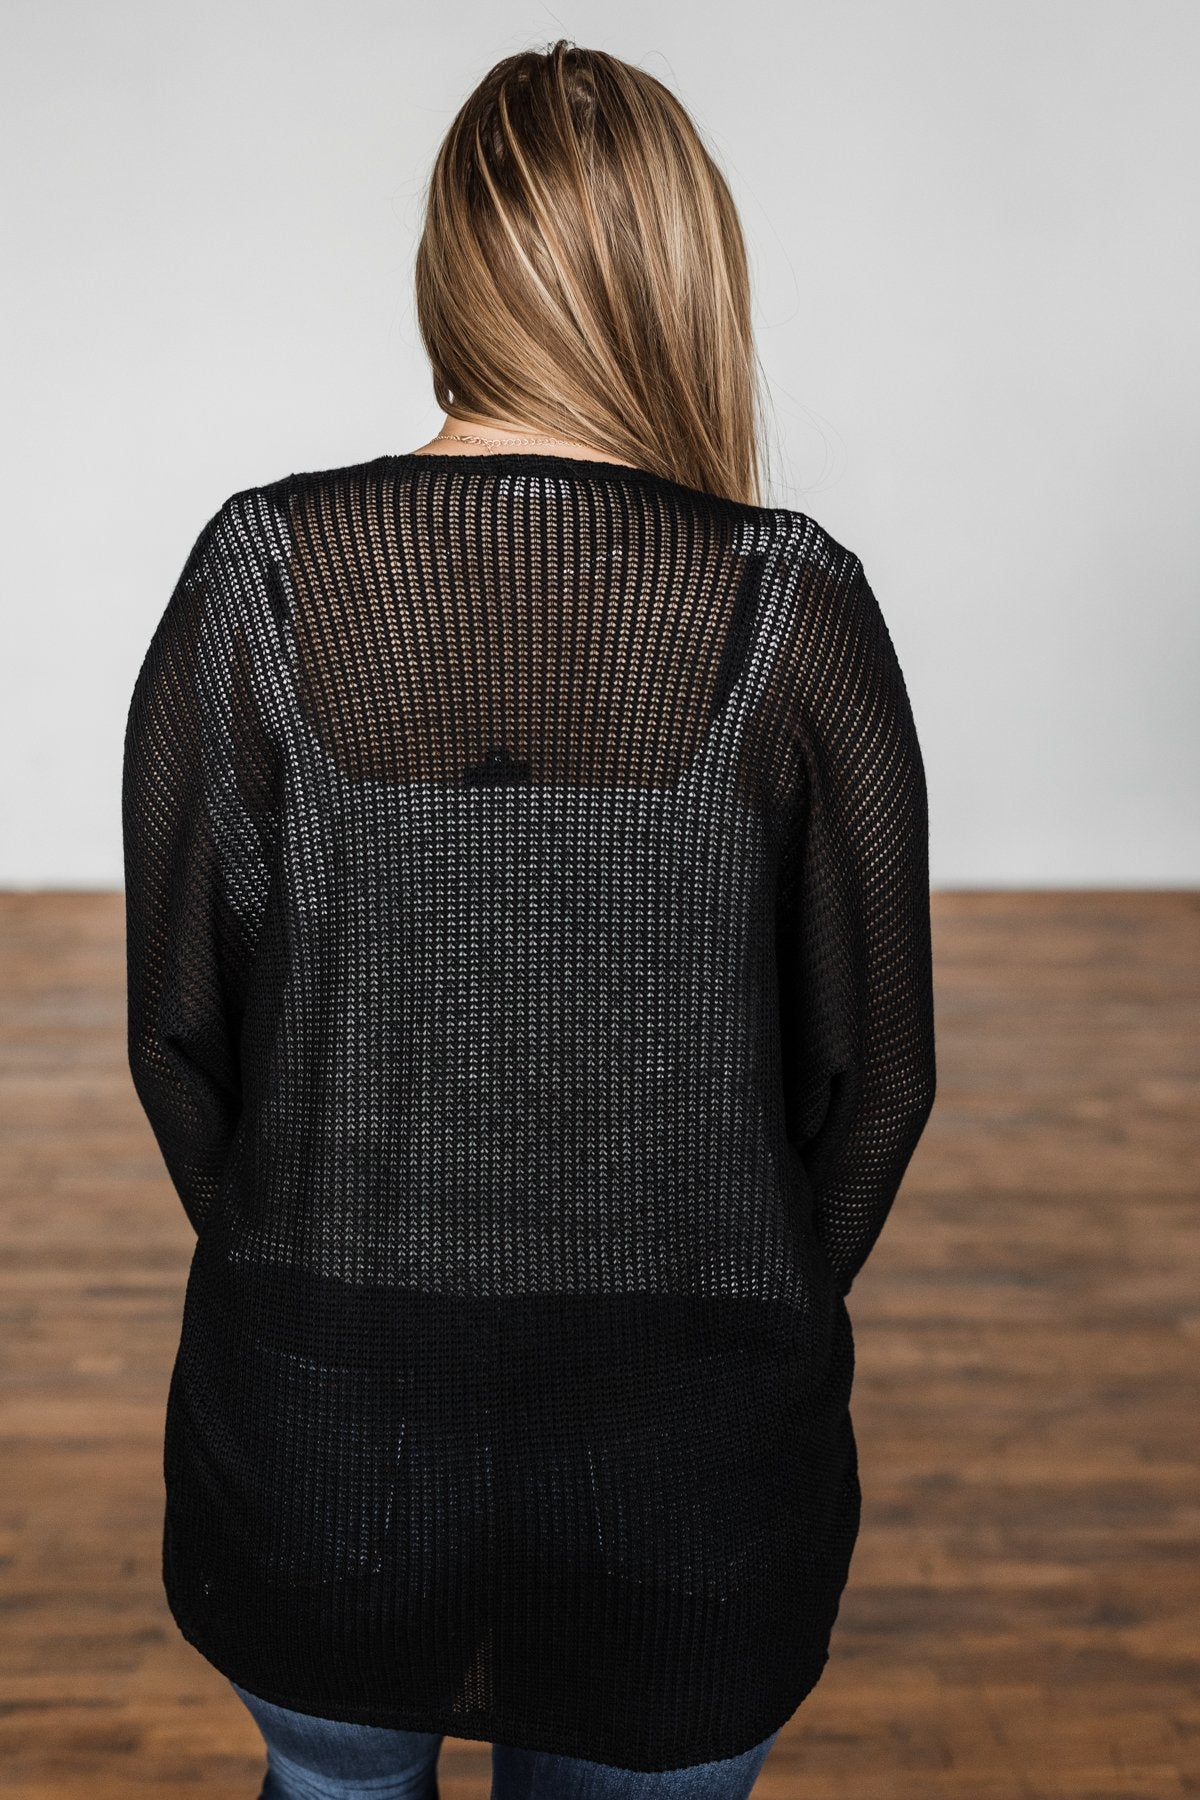 Sincerely Yours Knit Cardigan- Black